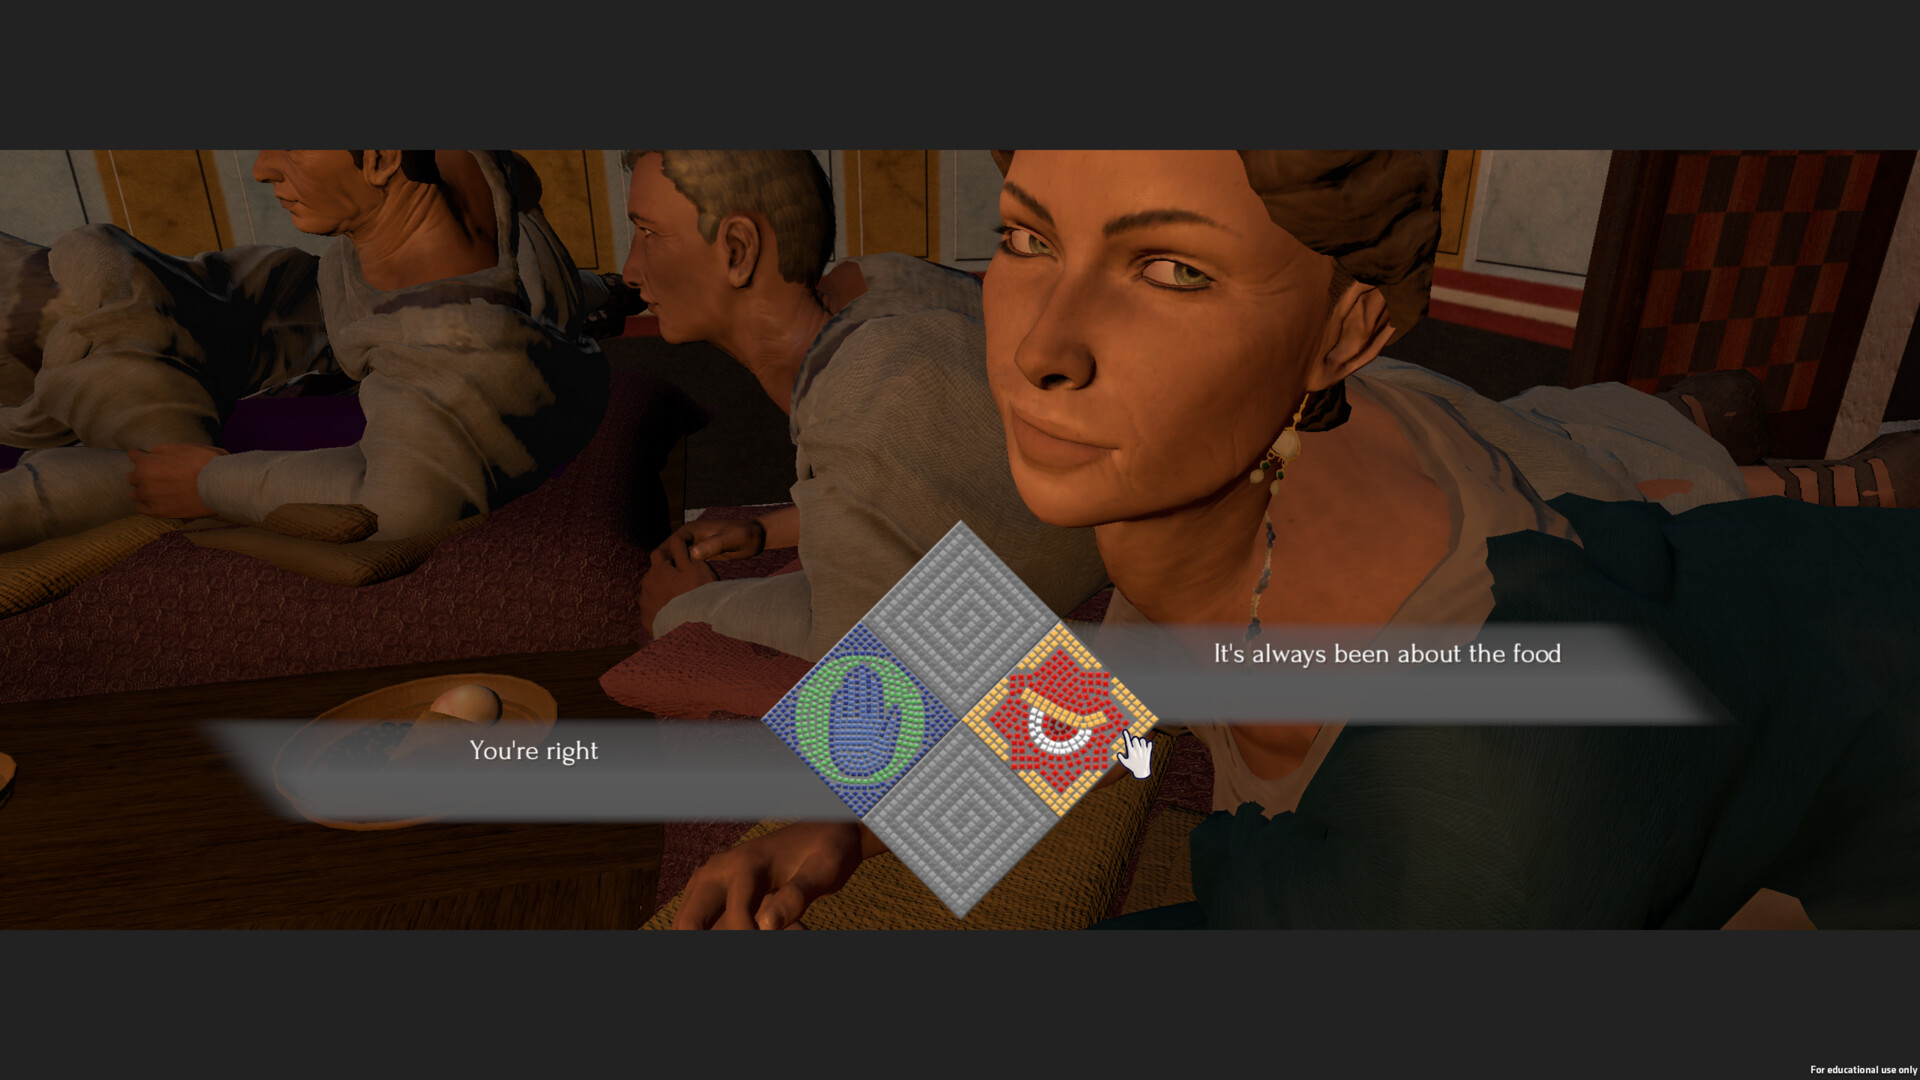 When players speak to characters they are presented different speech options with different emotional impacts. As pictured, these are coded with representative icons done in a mosaic style.